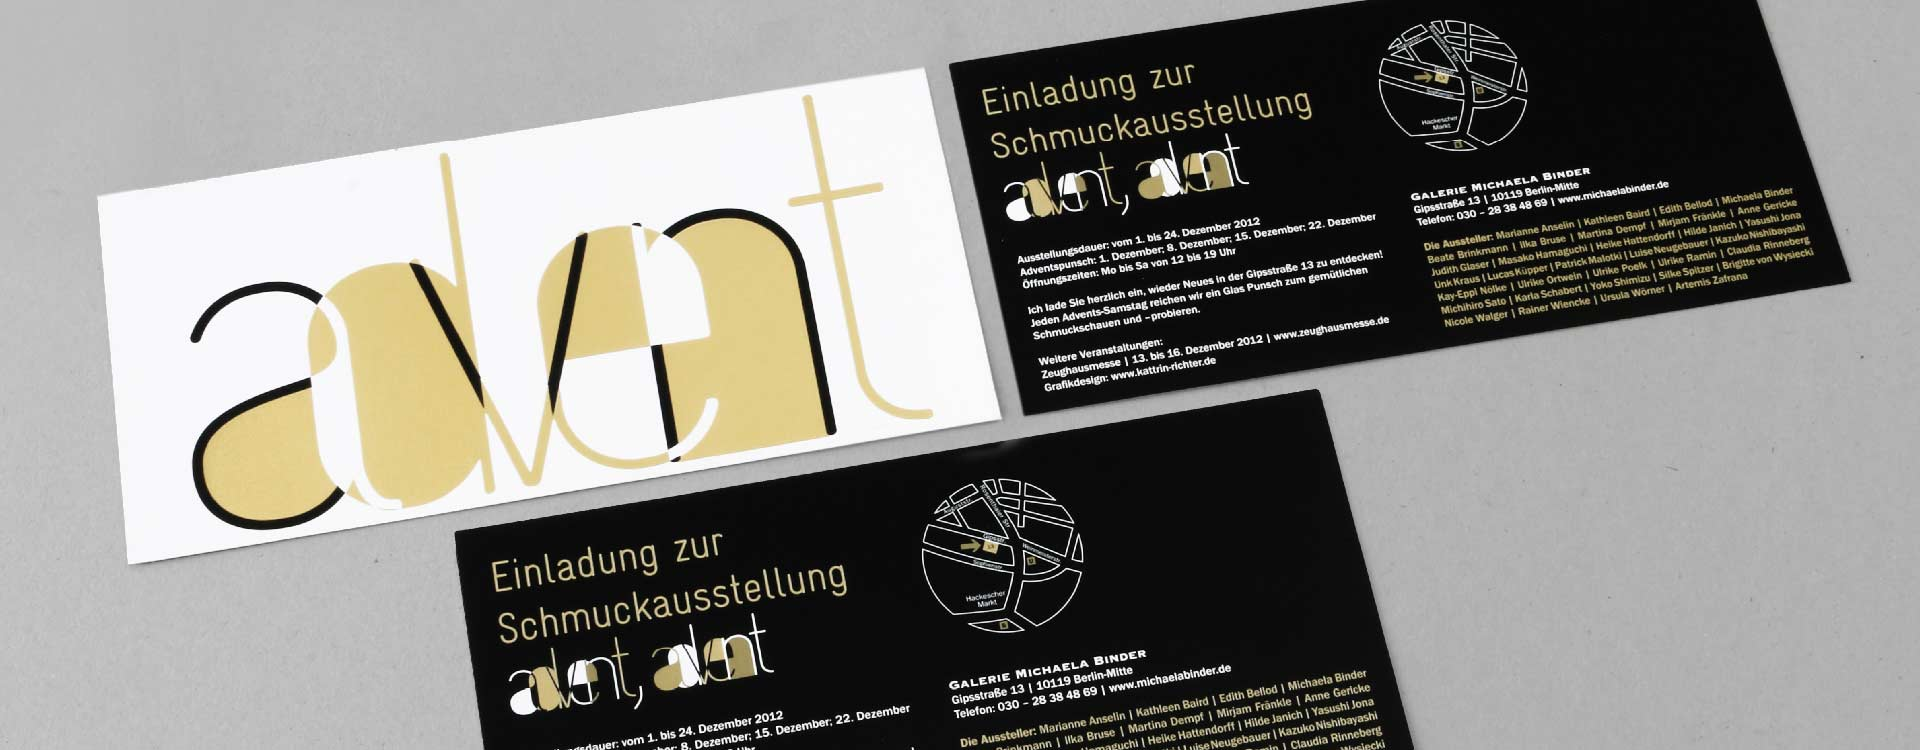 Invitation card with hot foil stamping for the jewellery exhibition 2012 in the gallery of Michaela Binder, Berlin; Design: Kattrin Richter | Graphic Design Studio